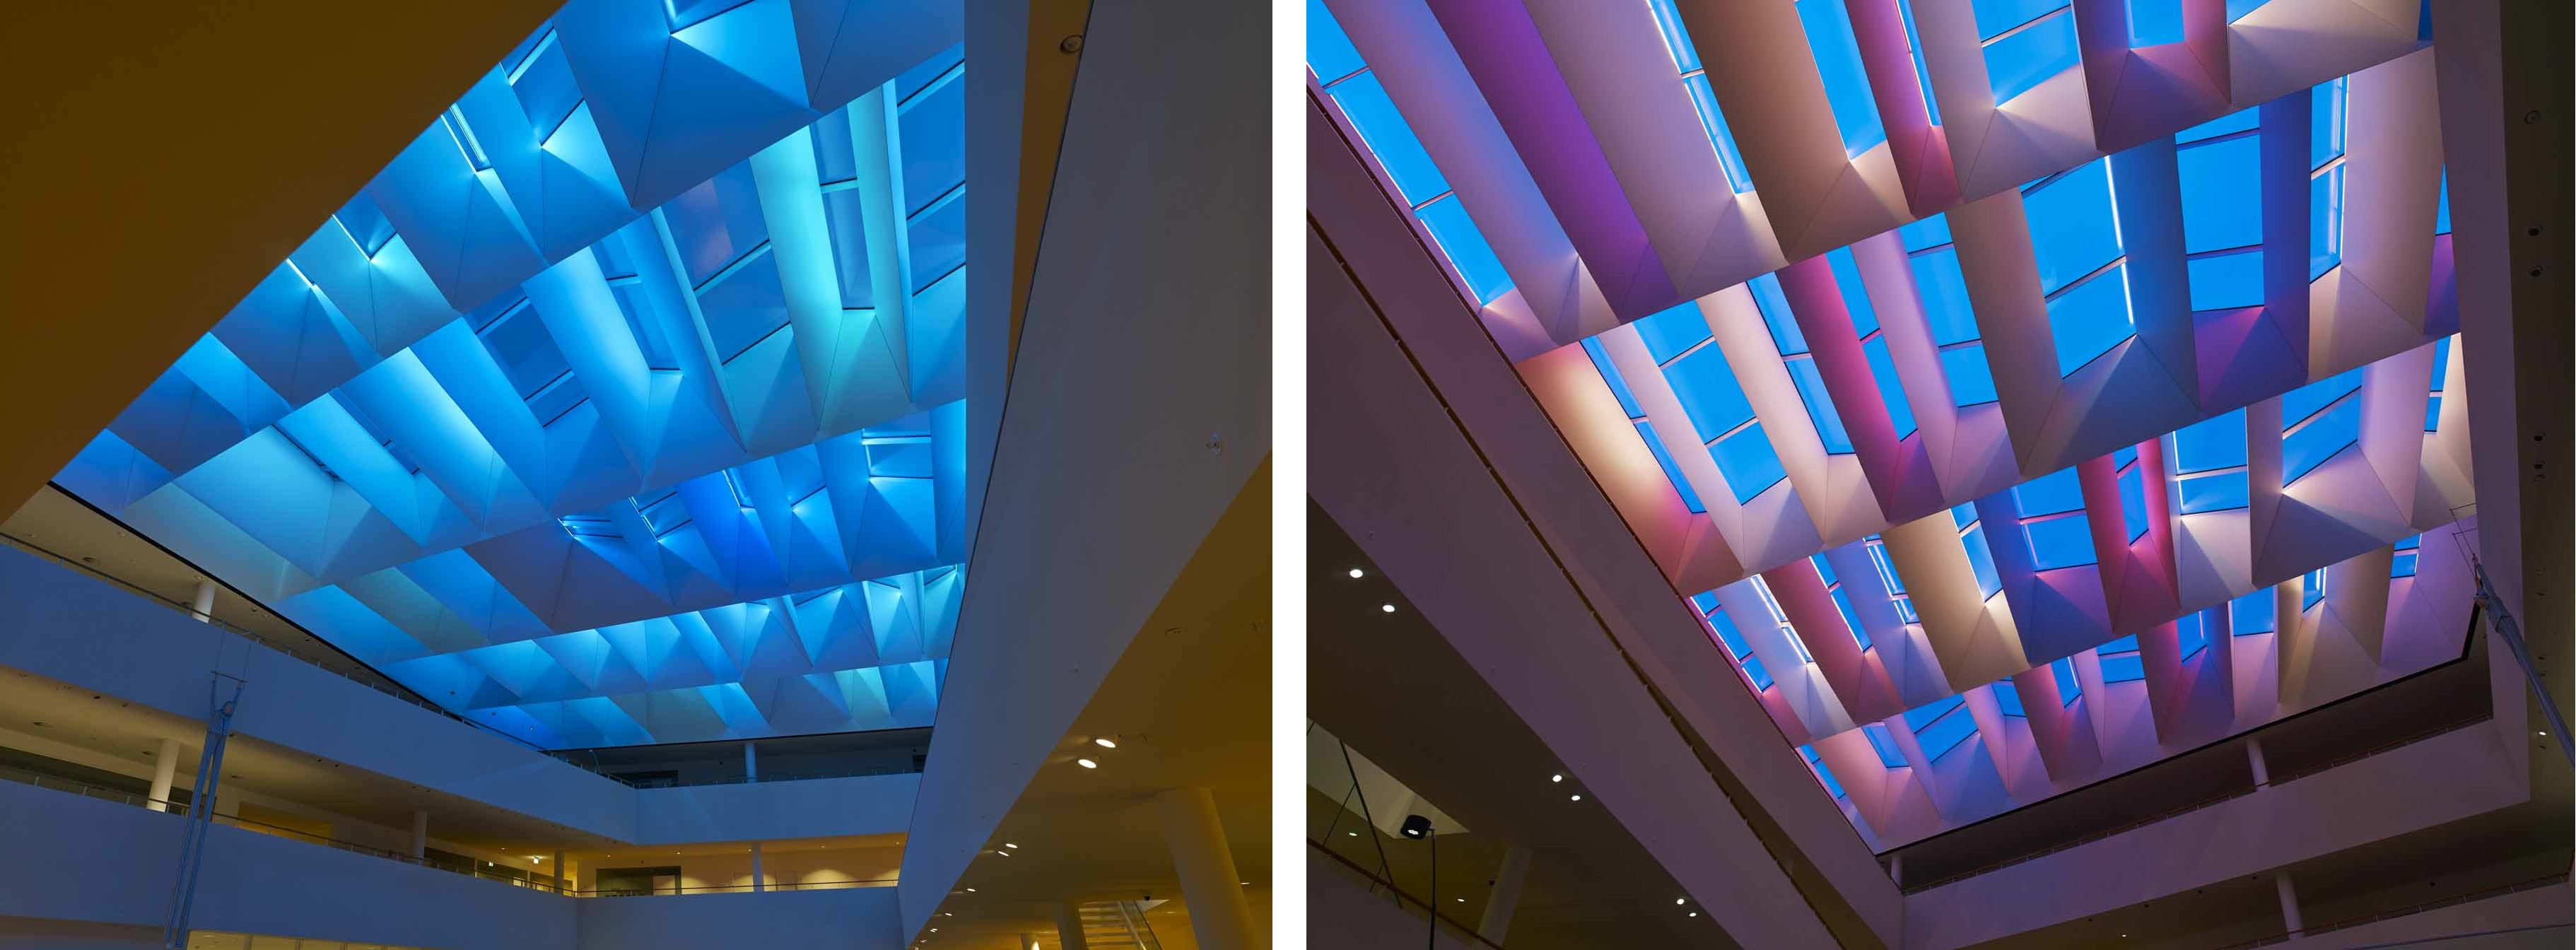 L'éclairage LED de l'atrium donne l'illusion d'un ciel bleu. / The LED lighting in the atrium gives the illusion of a blue sky. / (c) OSRAM